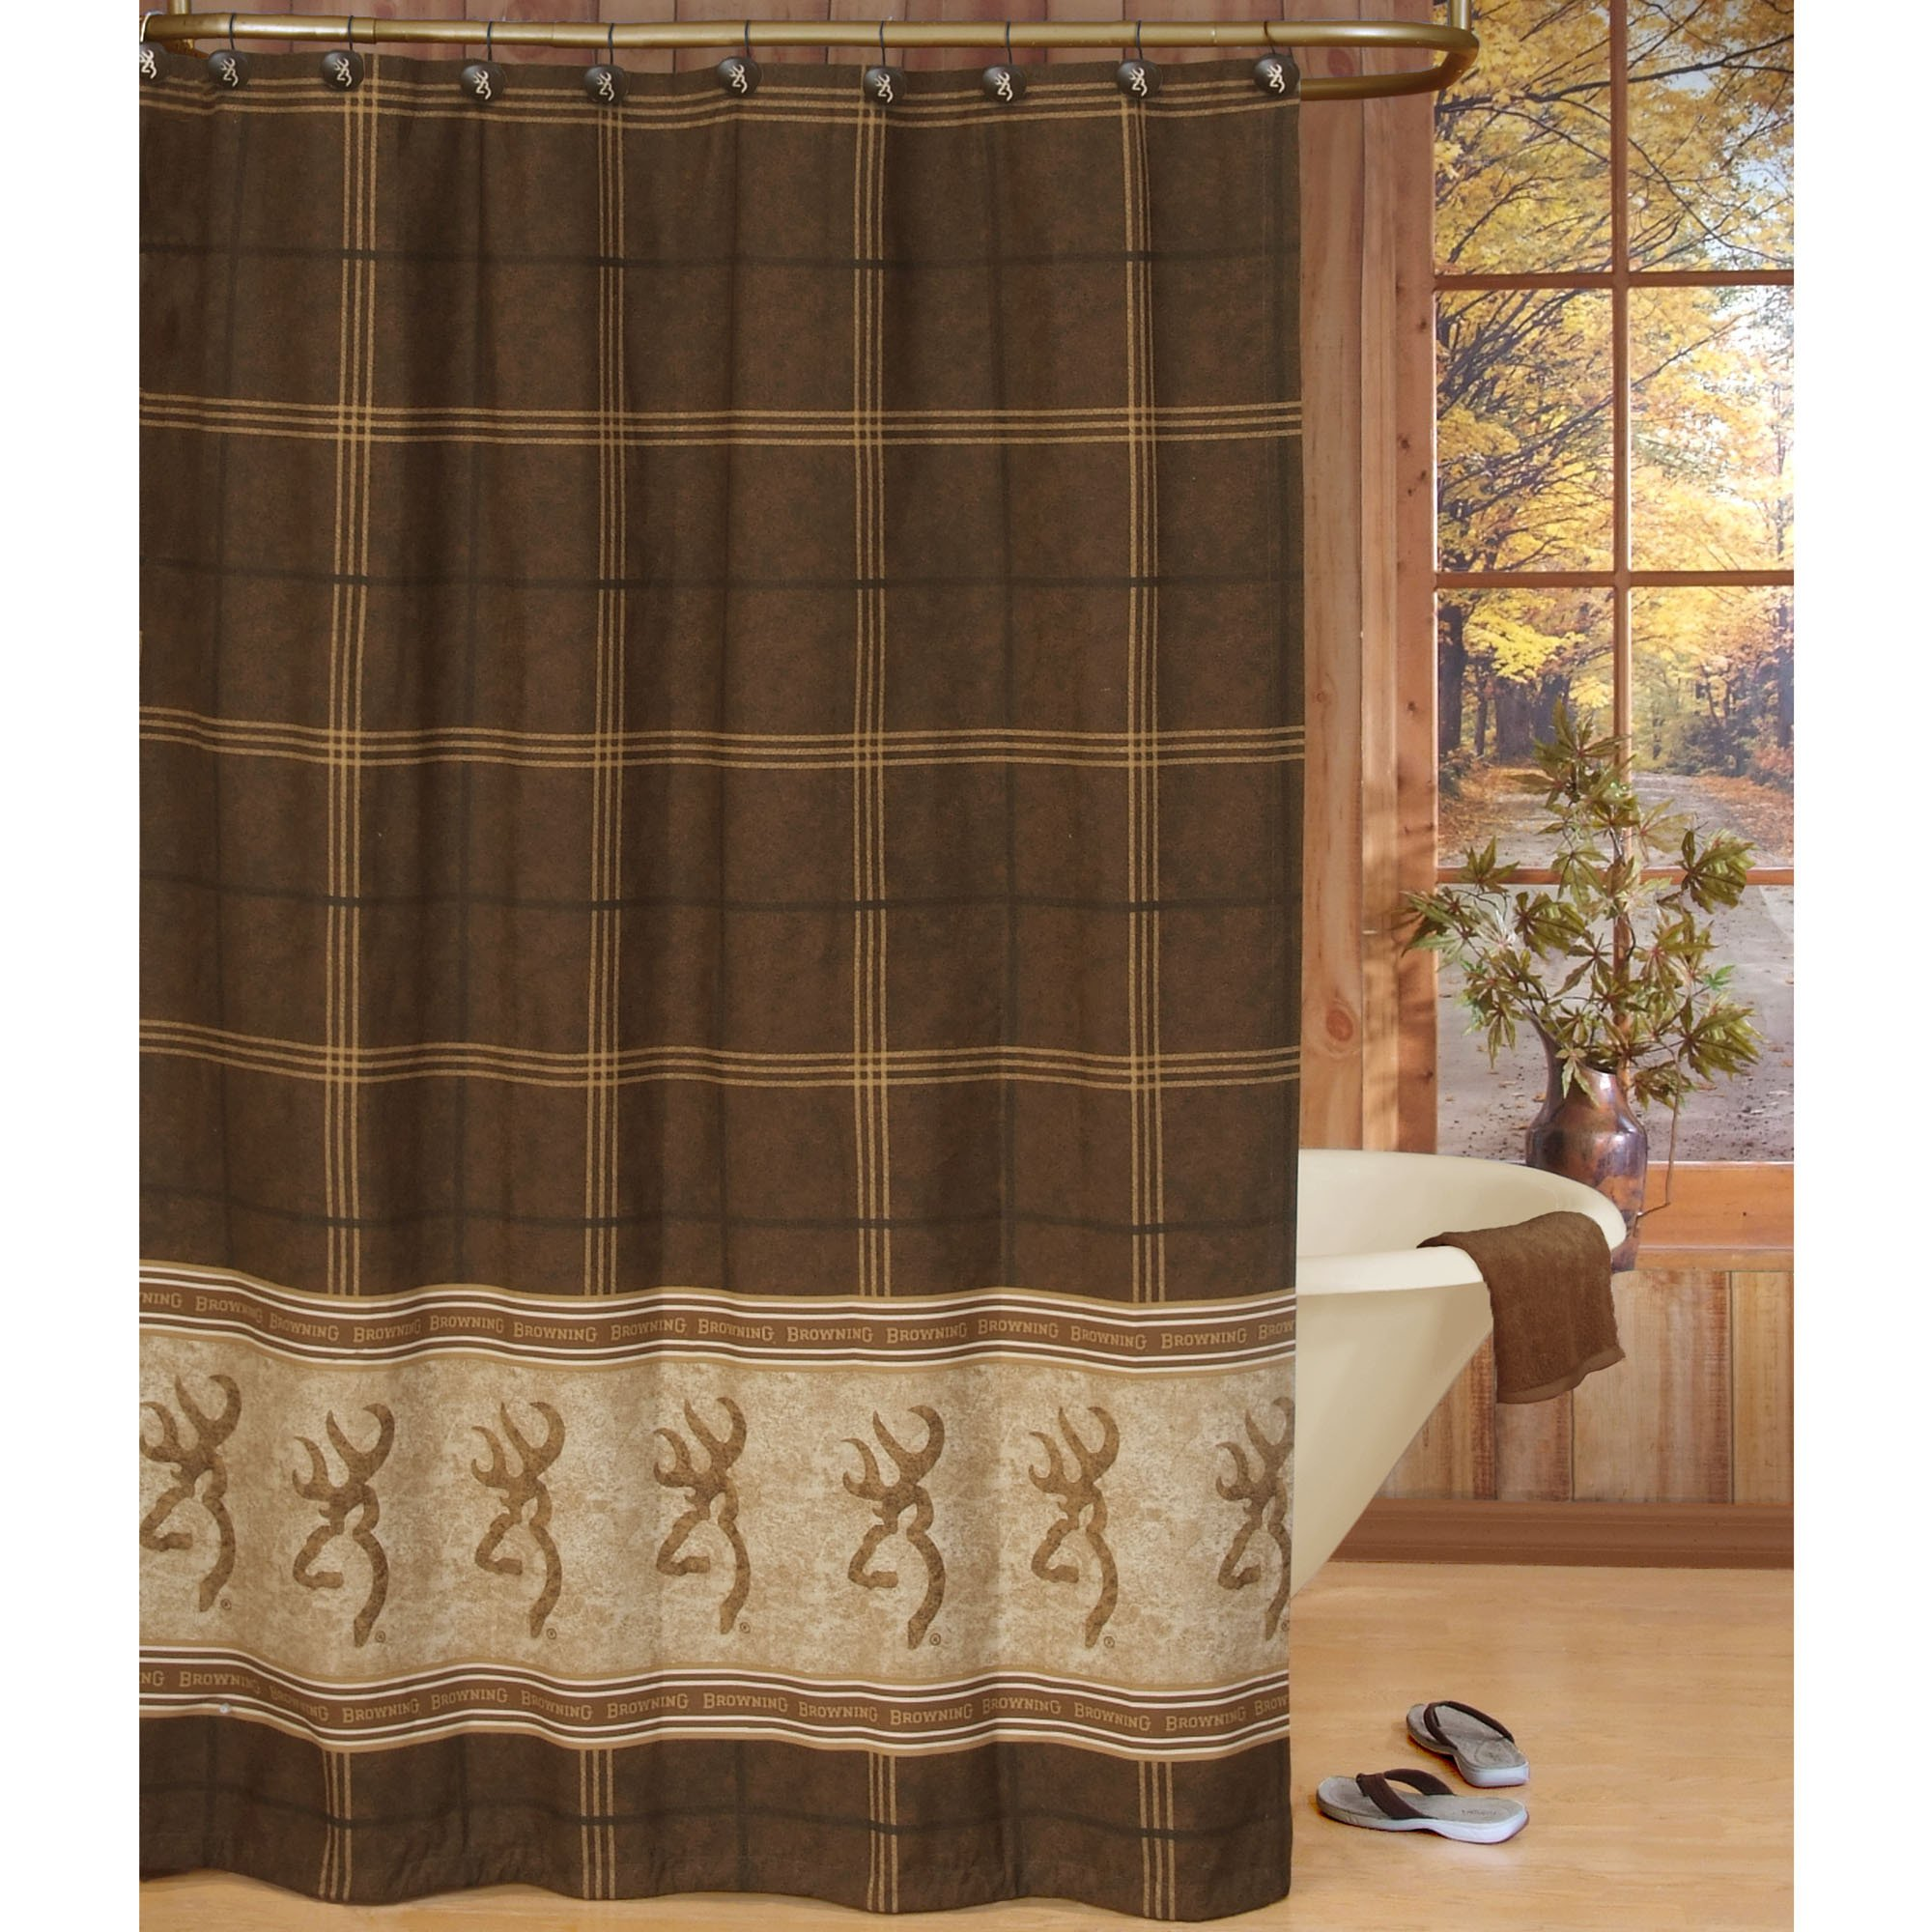 Home BrowningR Buckmark Shower Curtain Chocolate 6 Square 2000x2000